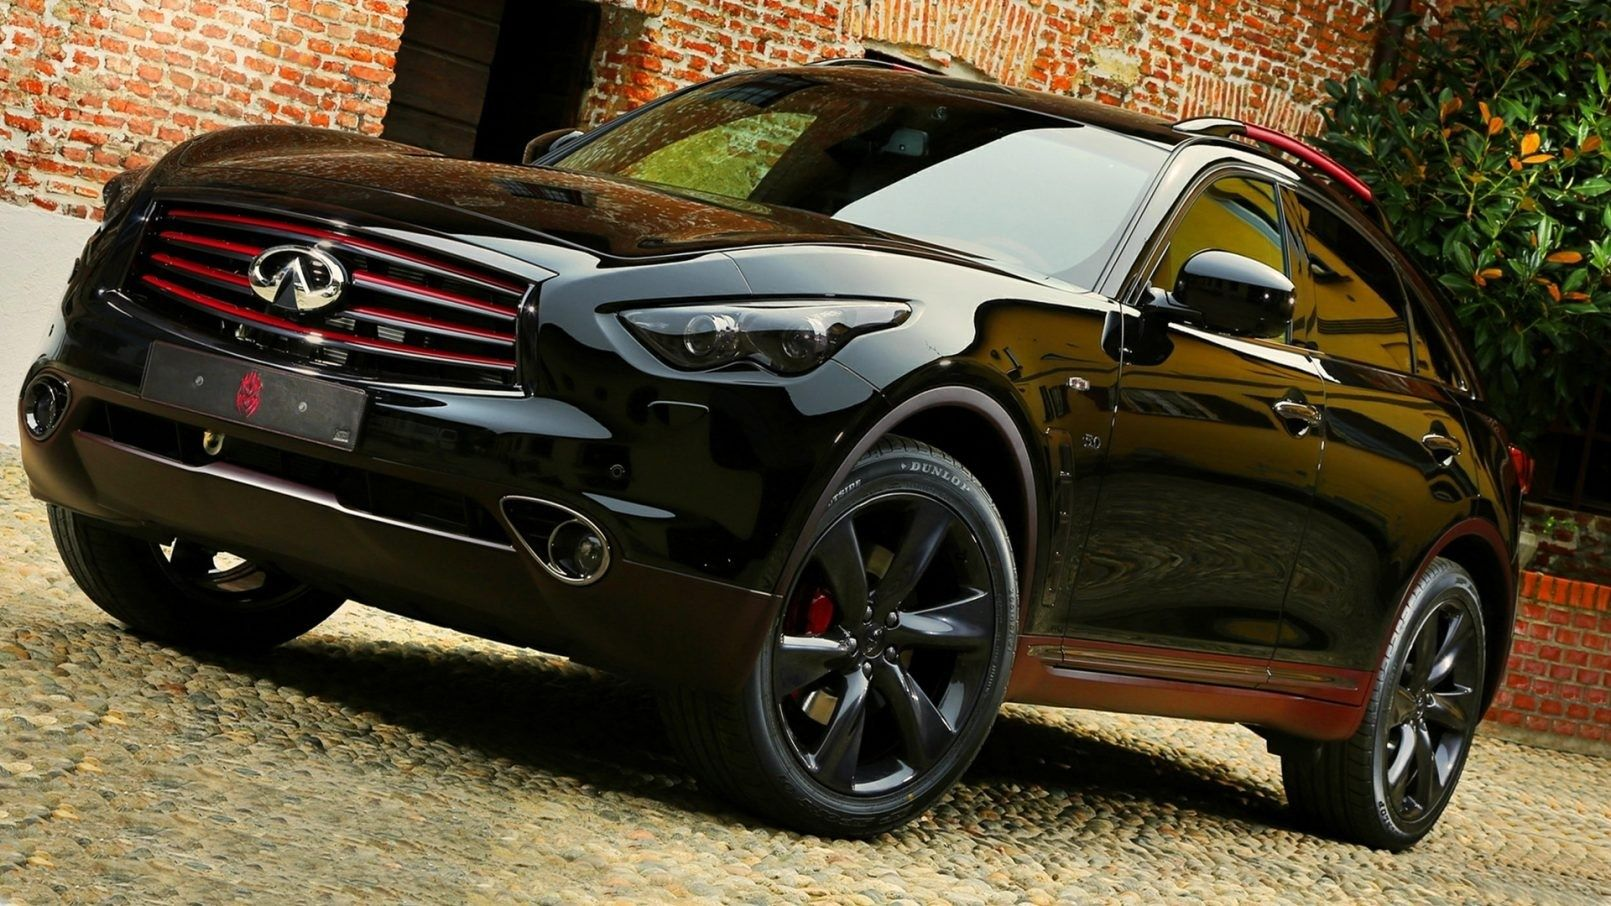 2019 Infiniti Qx70 Exterior And Interior Review Infiniti Car New Cars